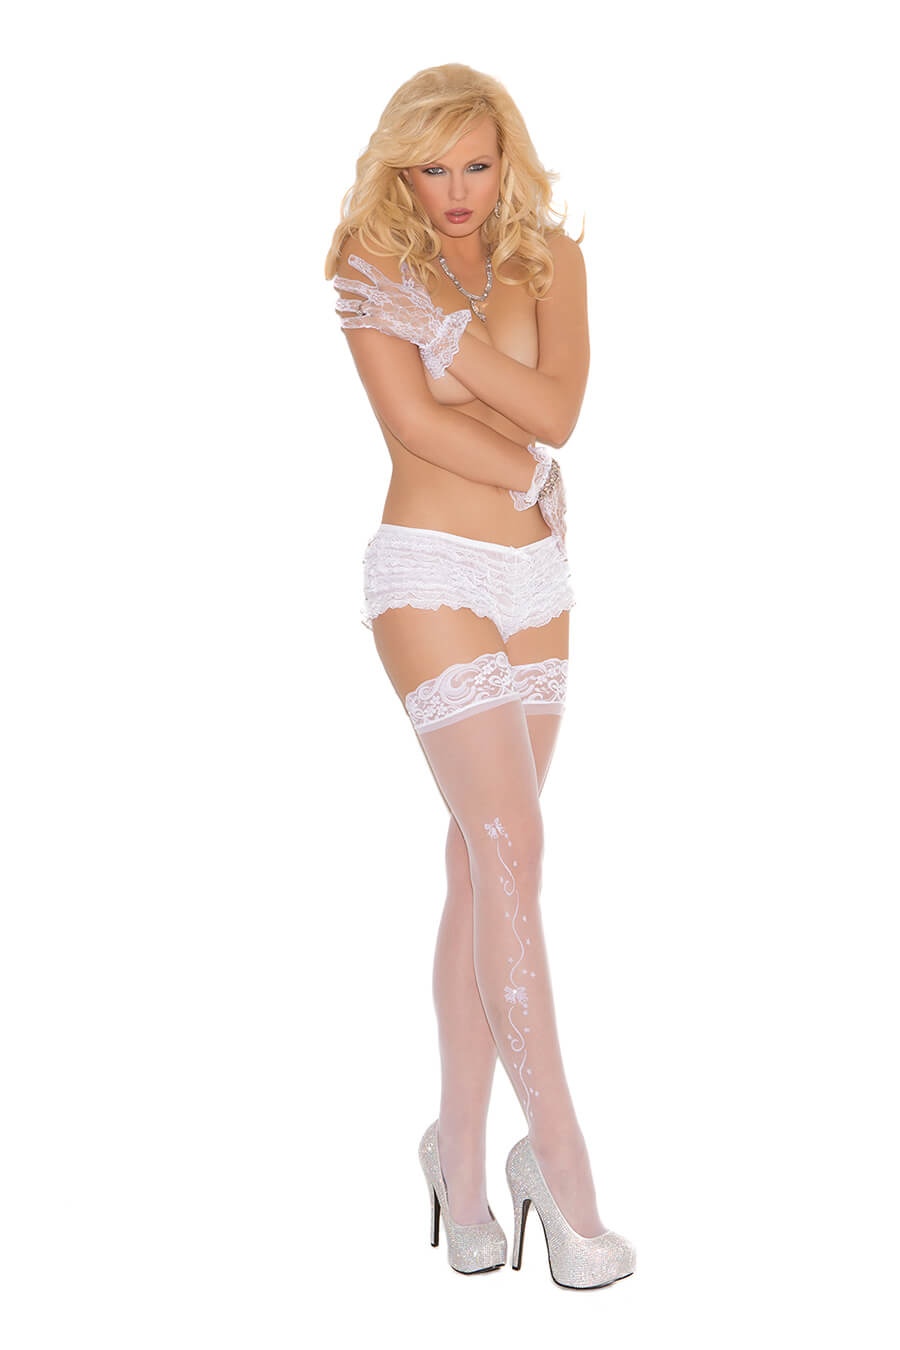 Wedding Bells Sheer Thigh Highs - Twilight Silk